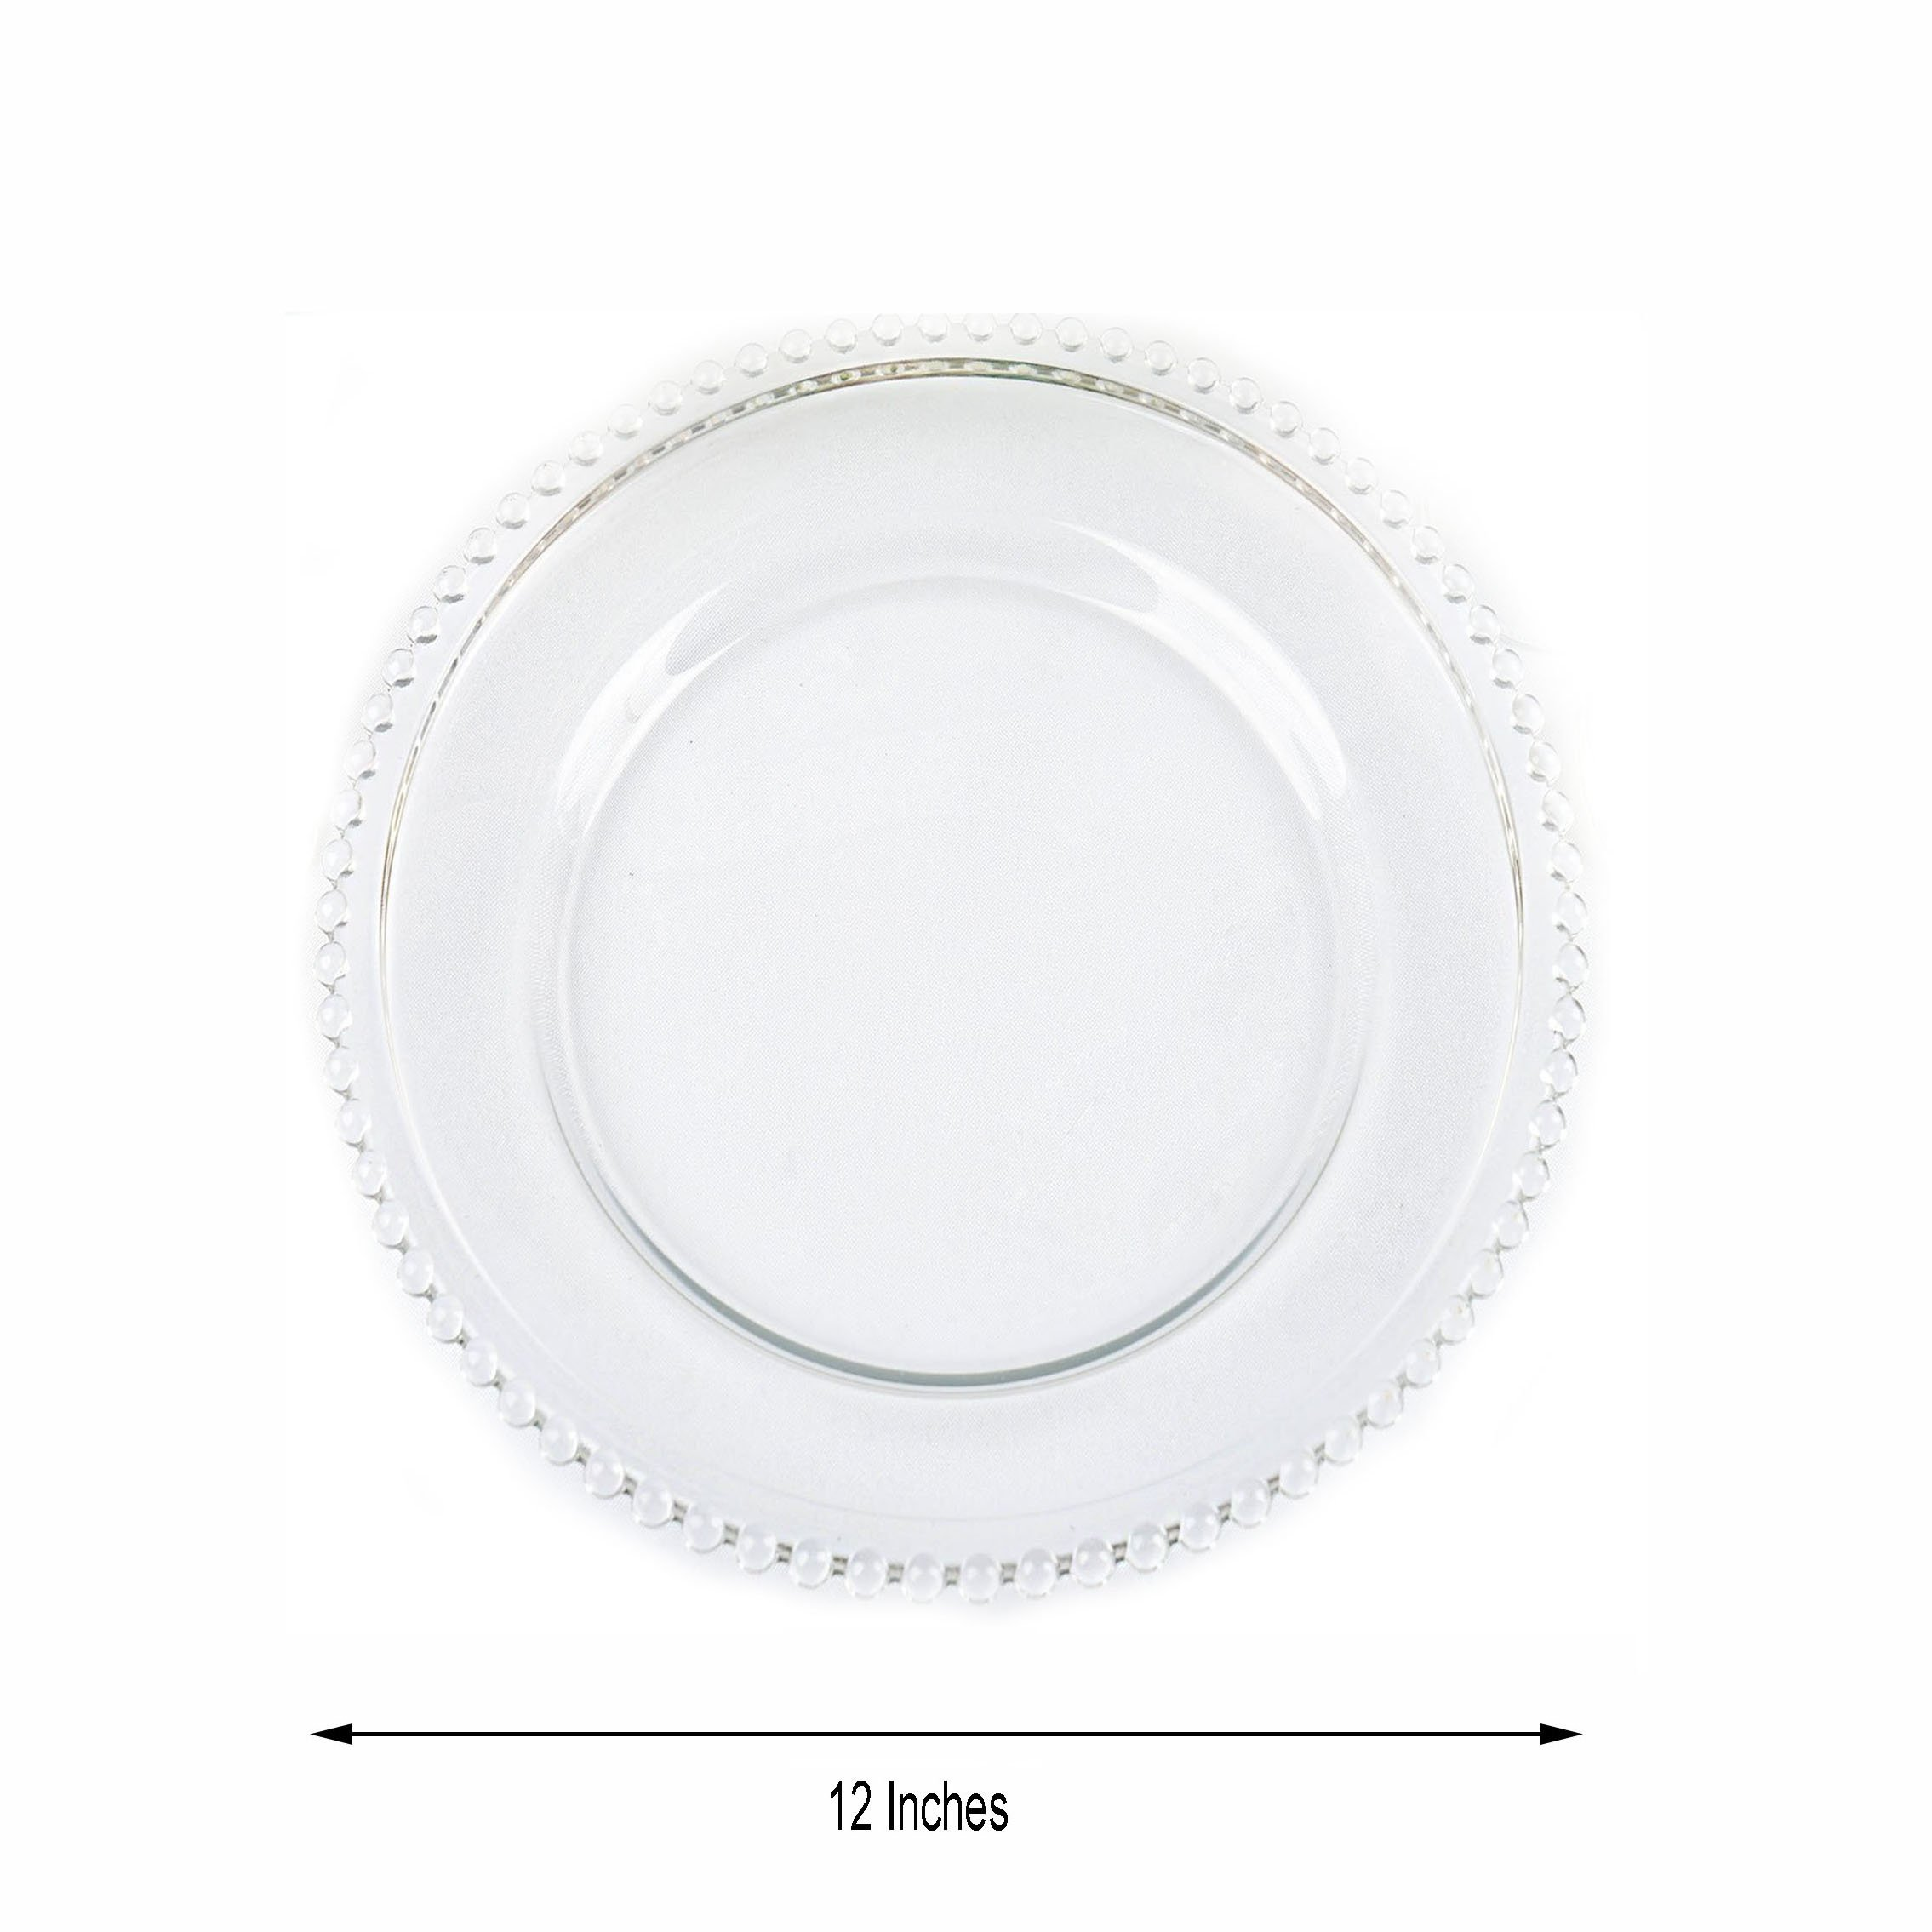 8 Pc 12 Glass Charger Plates Clear Beaded Rim Wedding Party Catering Table Sale Ebay